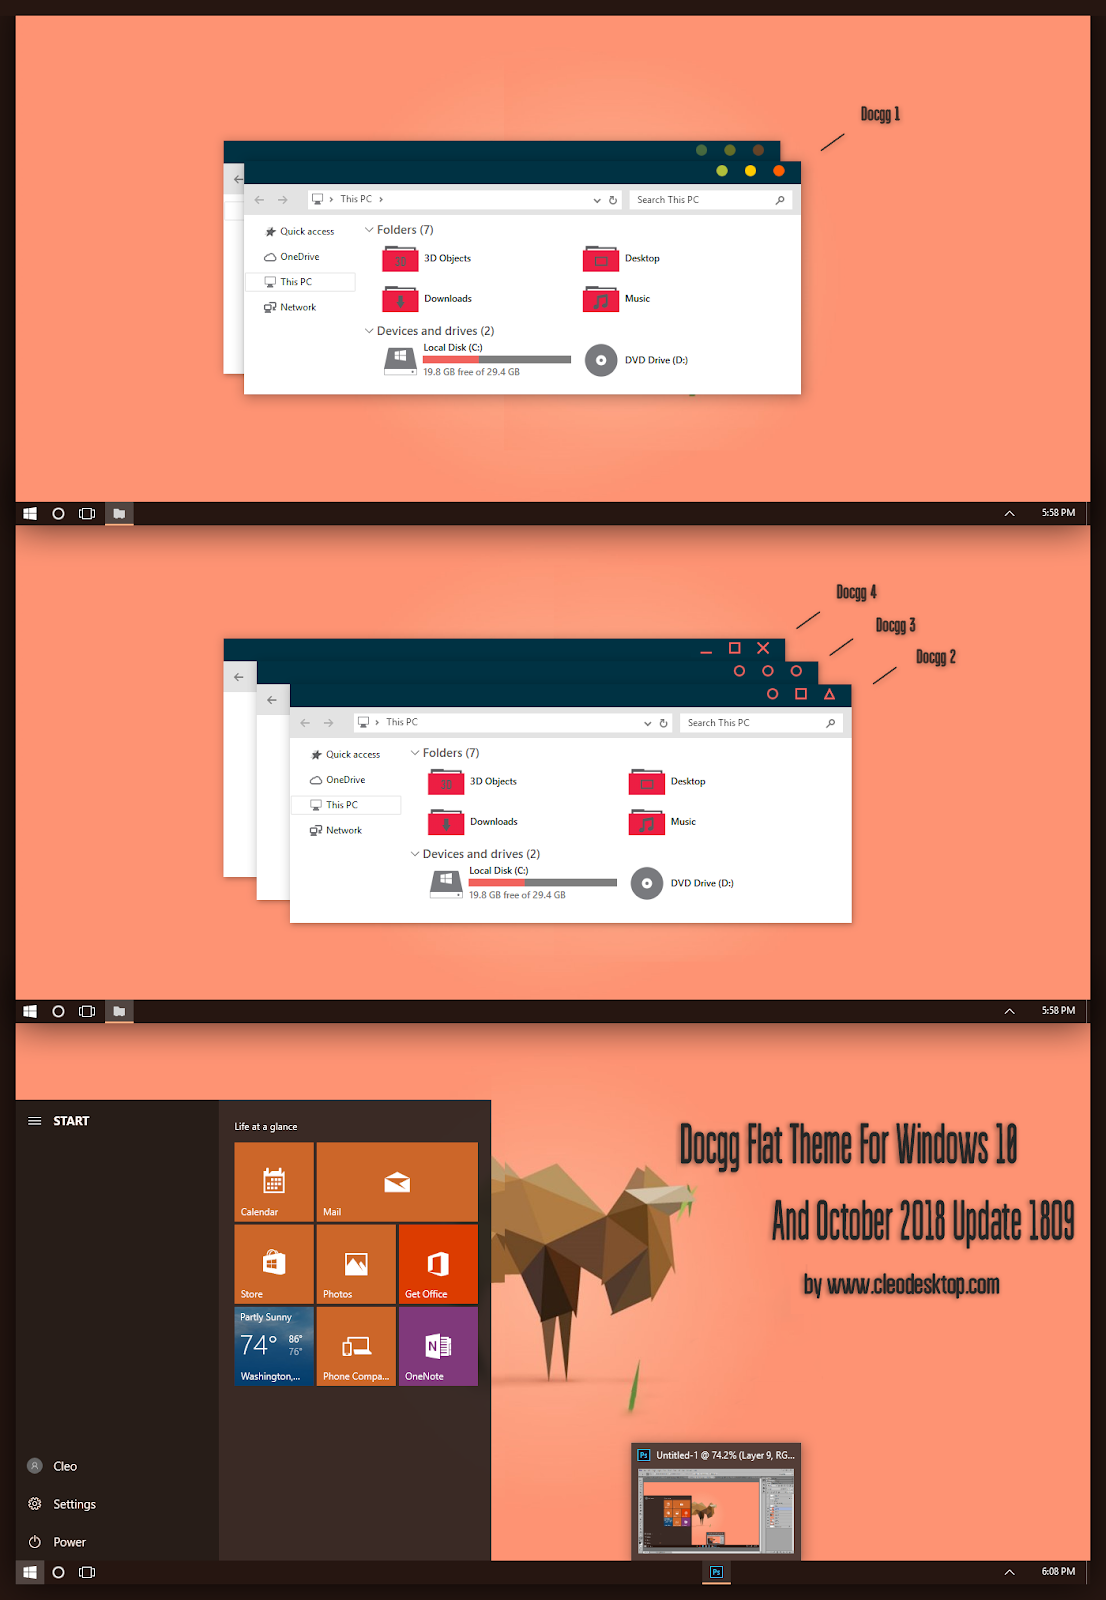 Docgg Flat Theme Windows10 October 2018 Update 1809 - Windows10